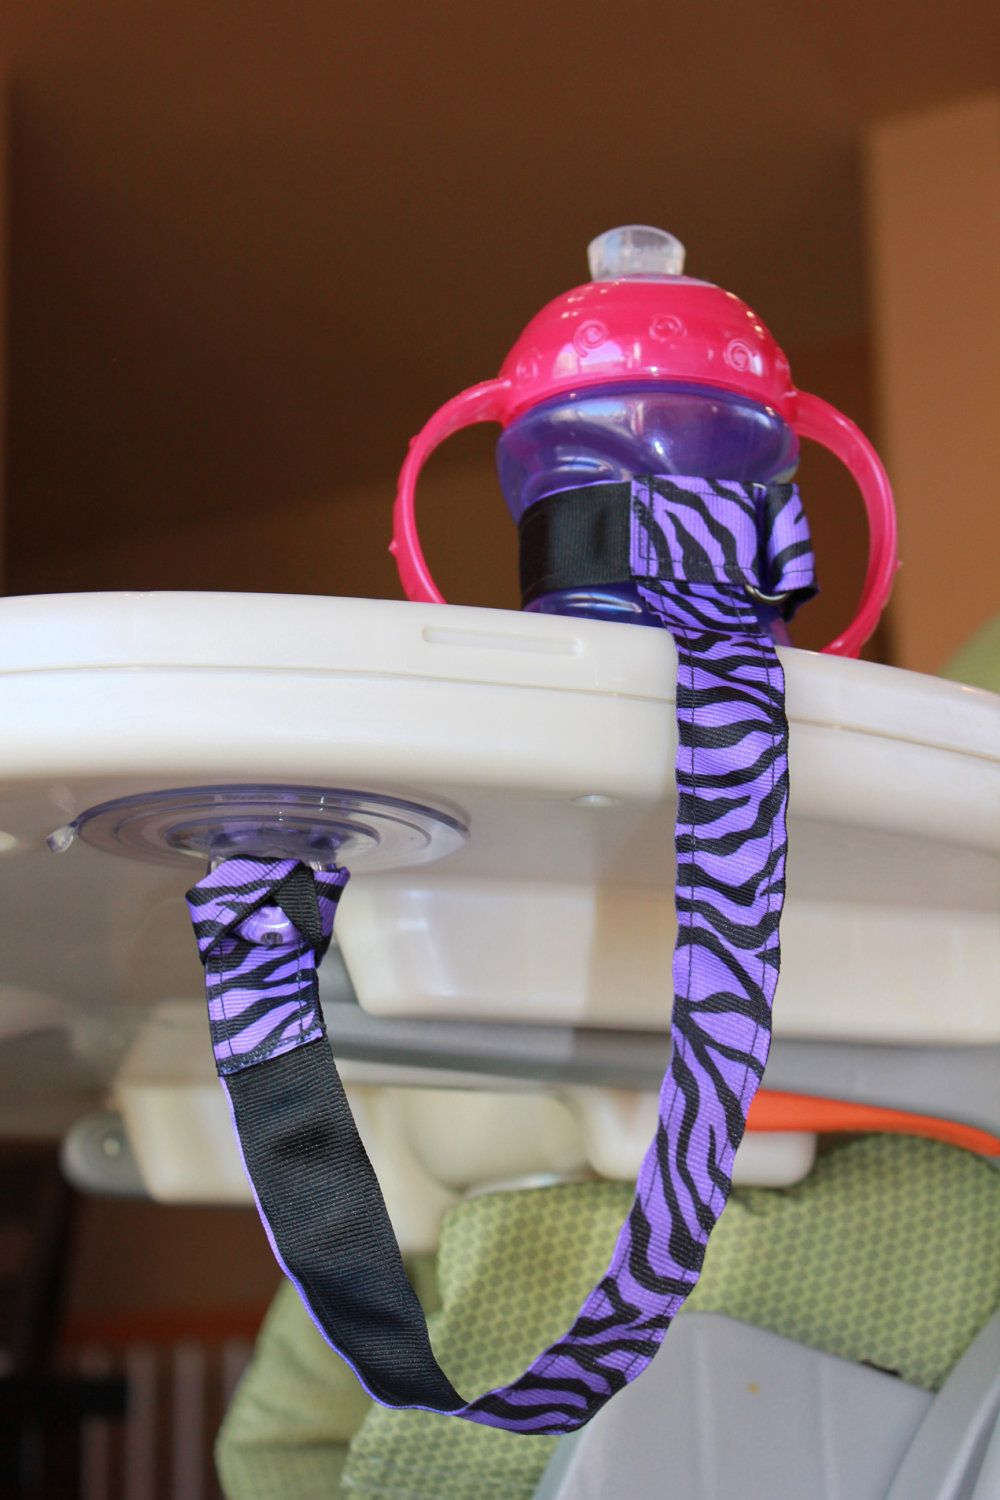 Bottle Tether Toy Tether Sippy Strap With By